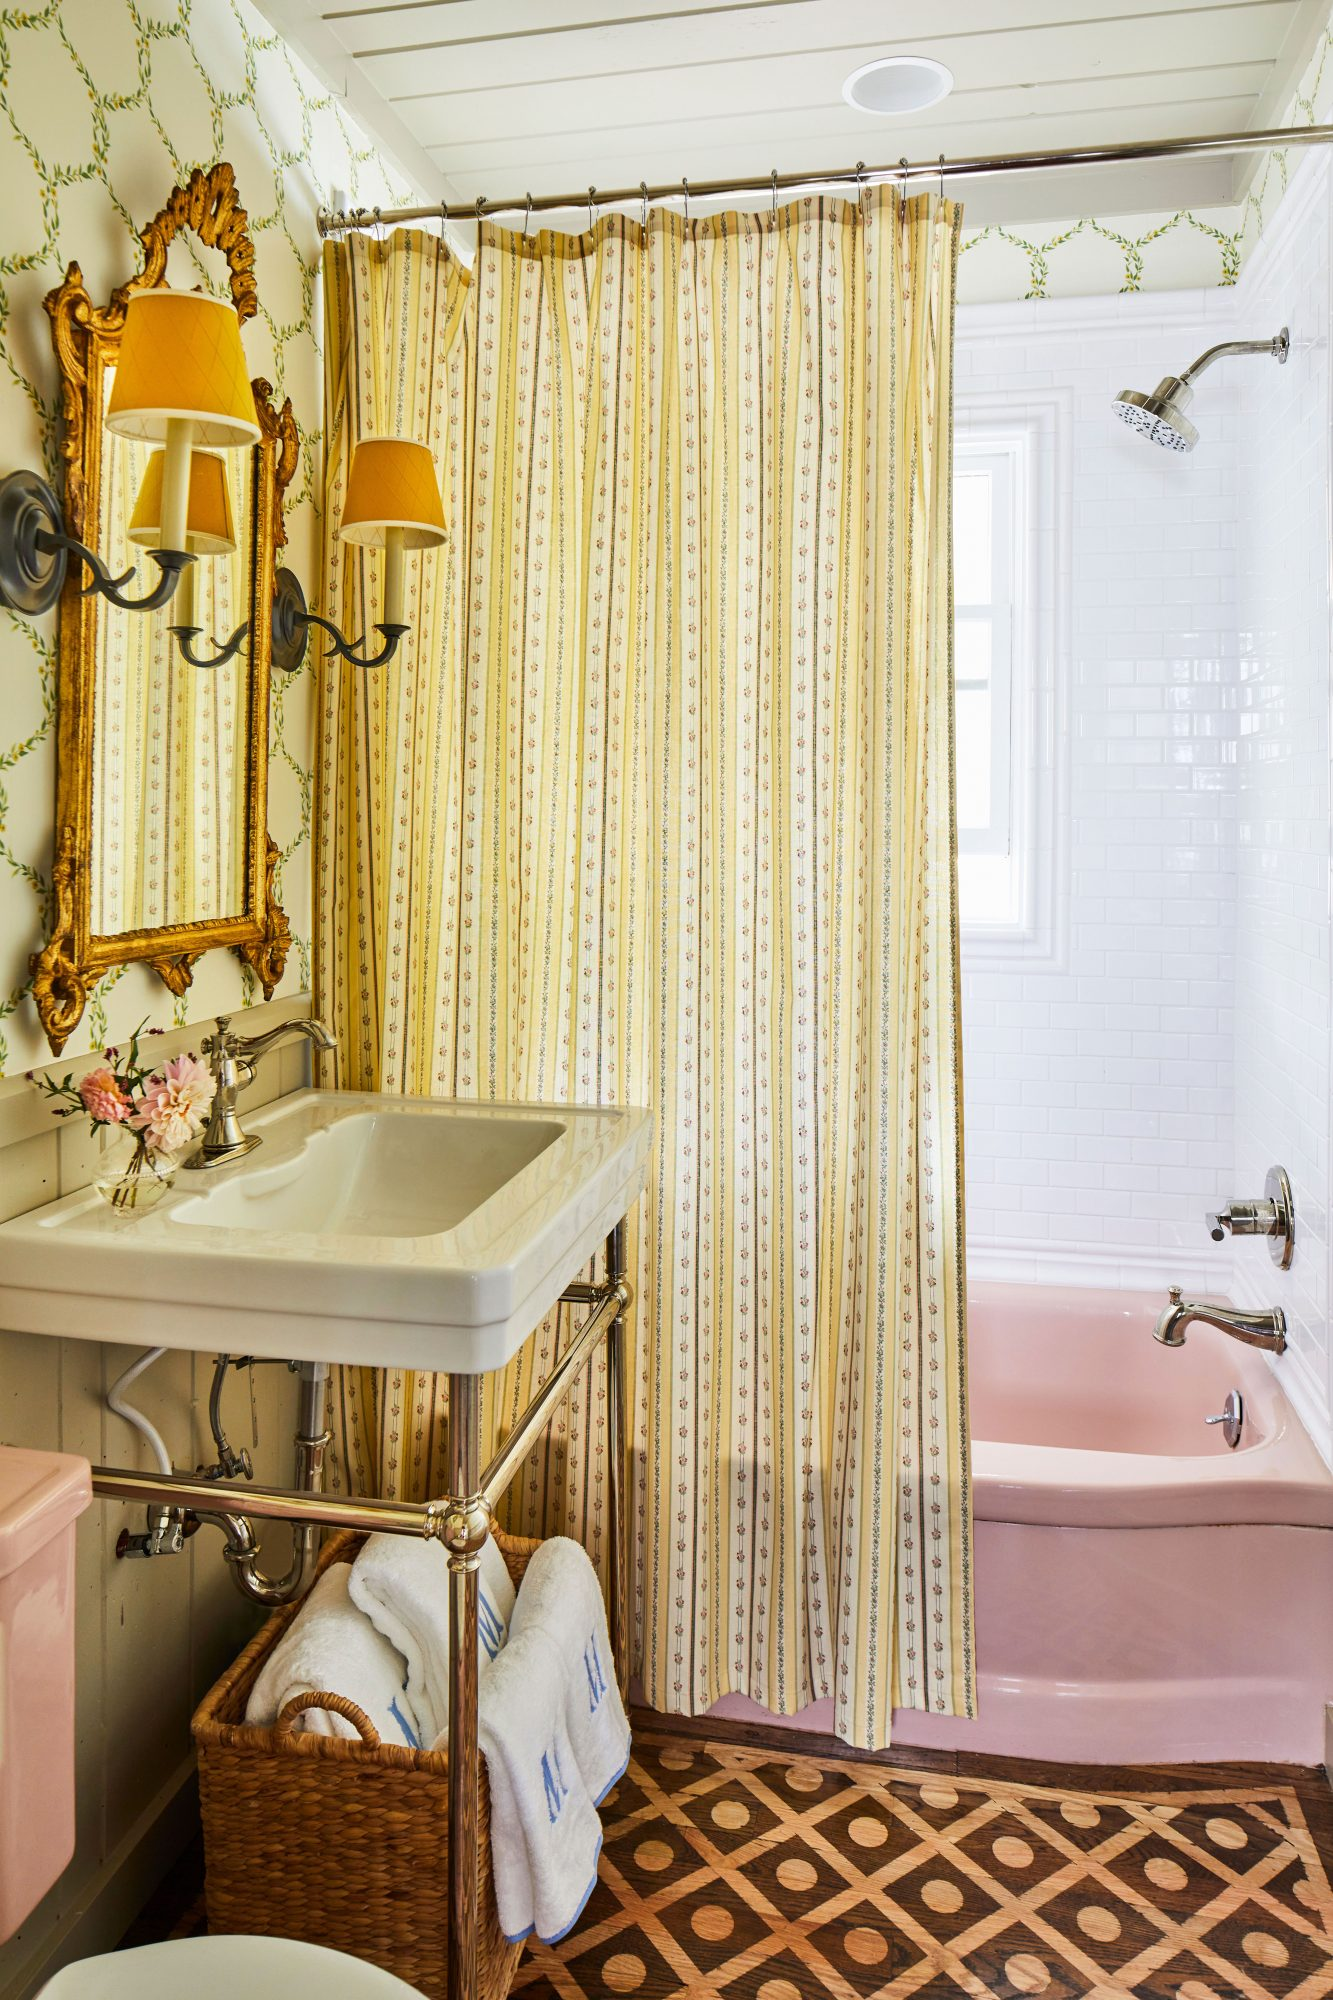 Bath with Vintage Pink Tub and Complimentary Details